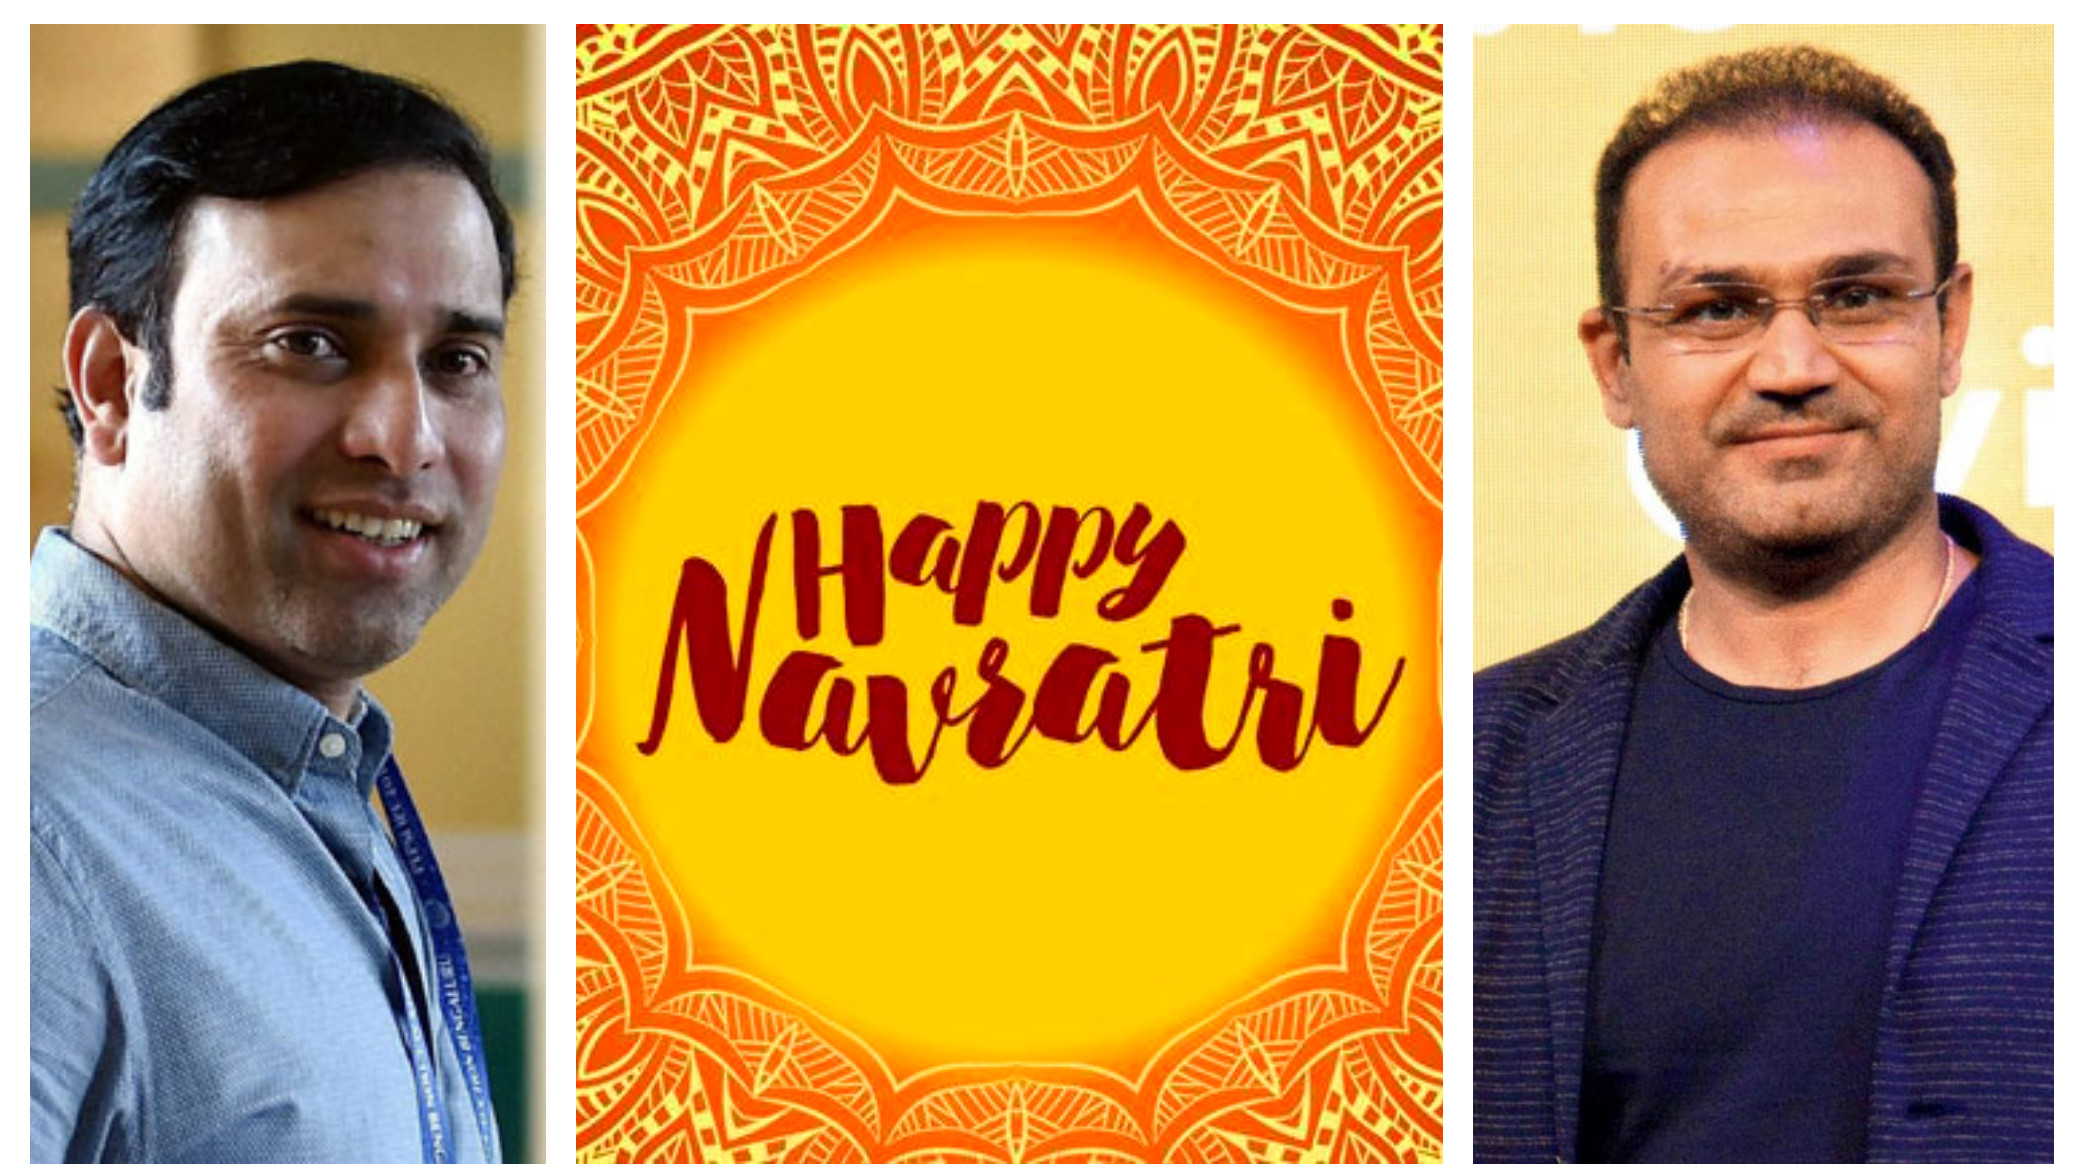 Cricket circle tweets wishes on the occasion of Navratri